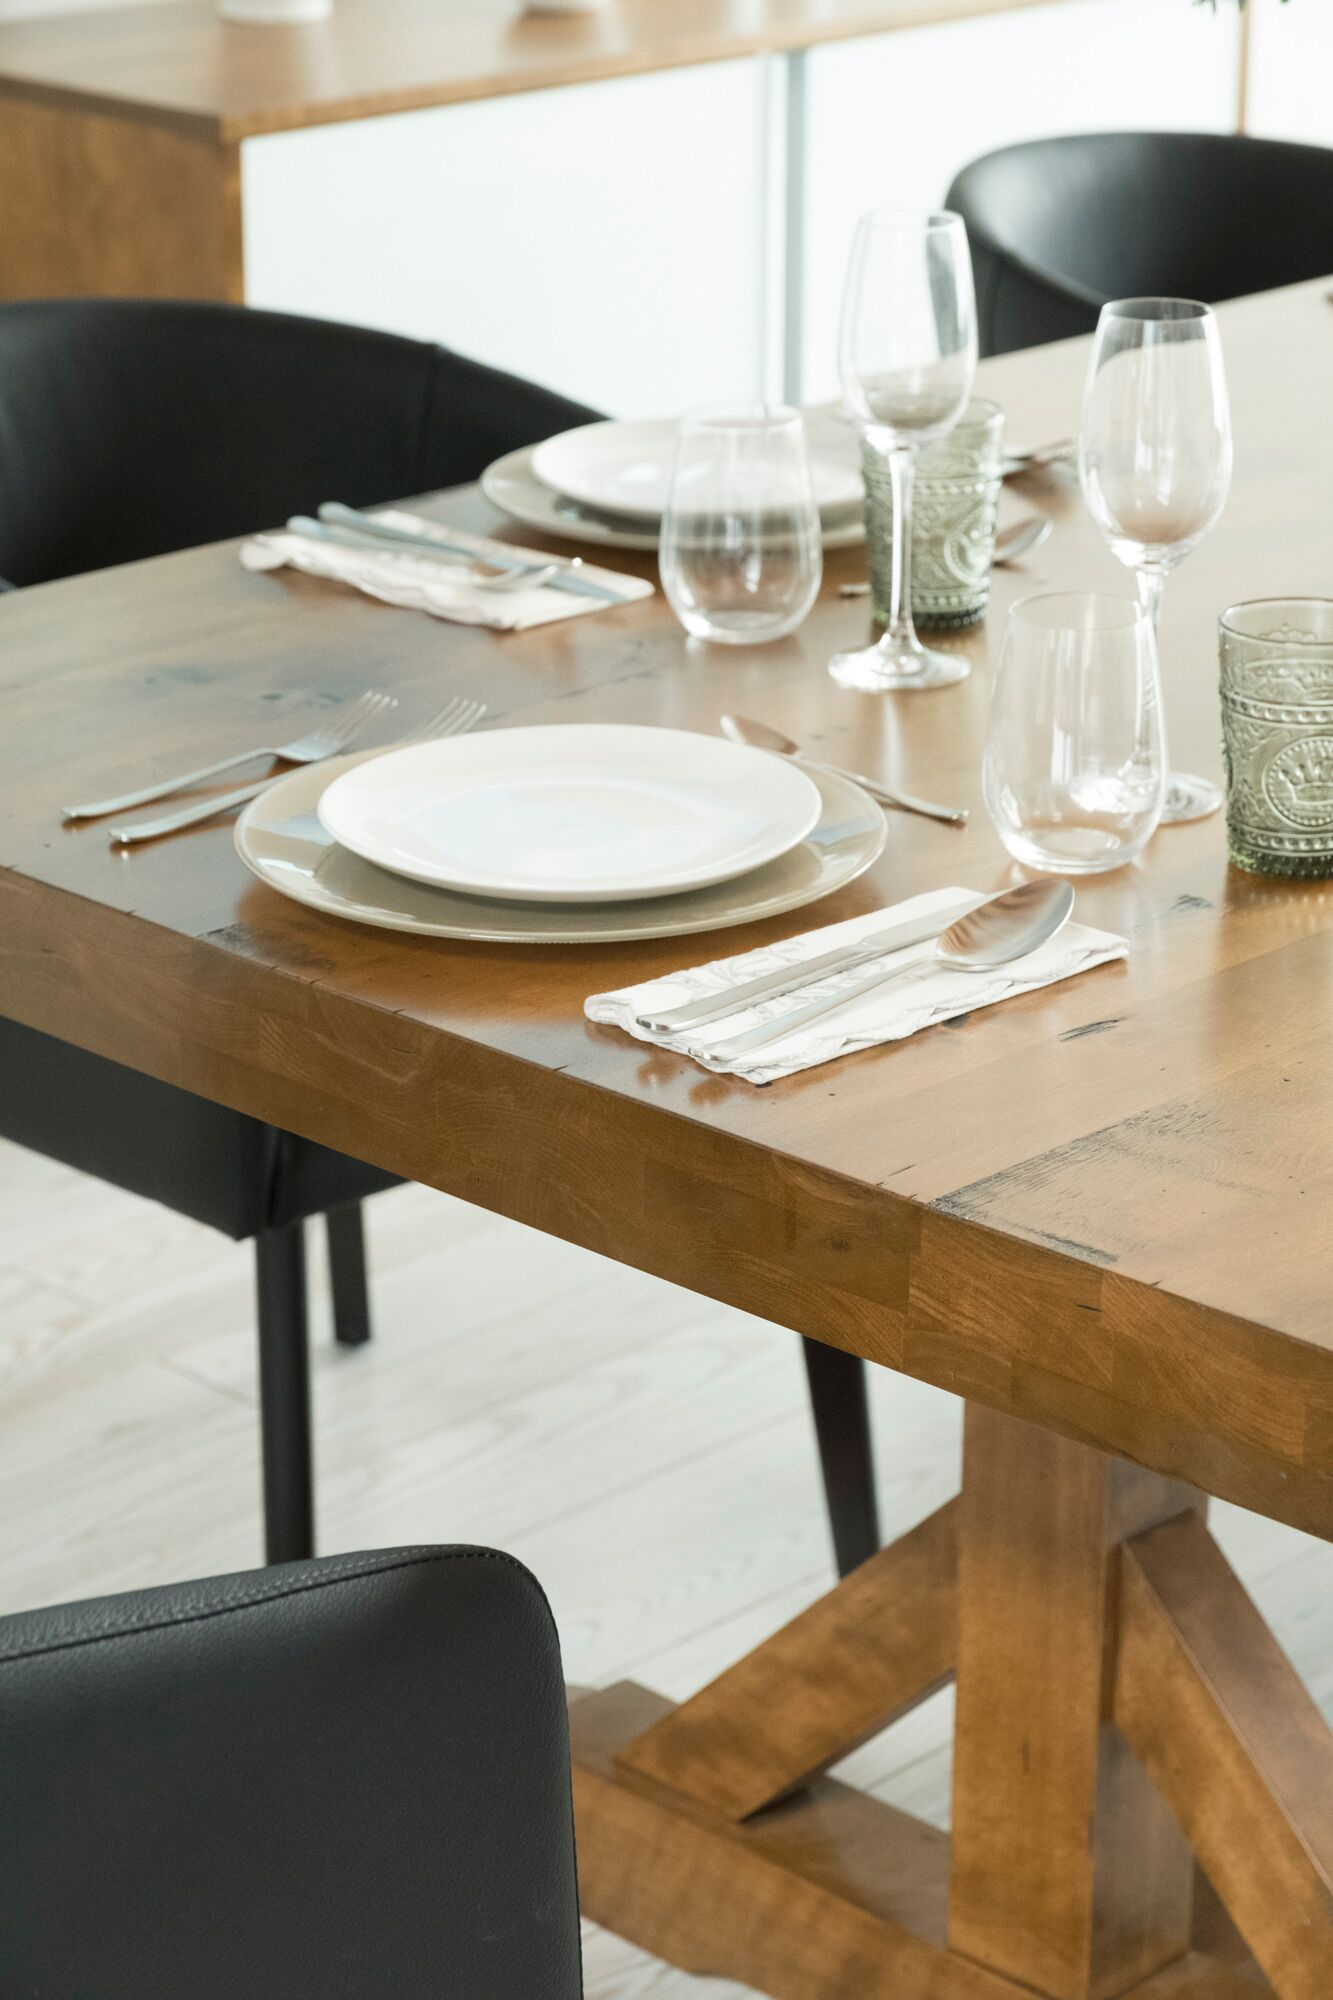 From Loft Comes The Rectangular Table With Pedestal Adding Its